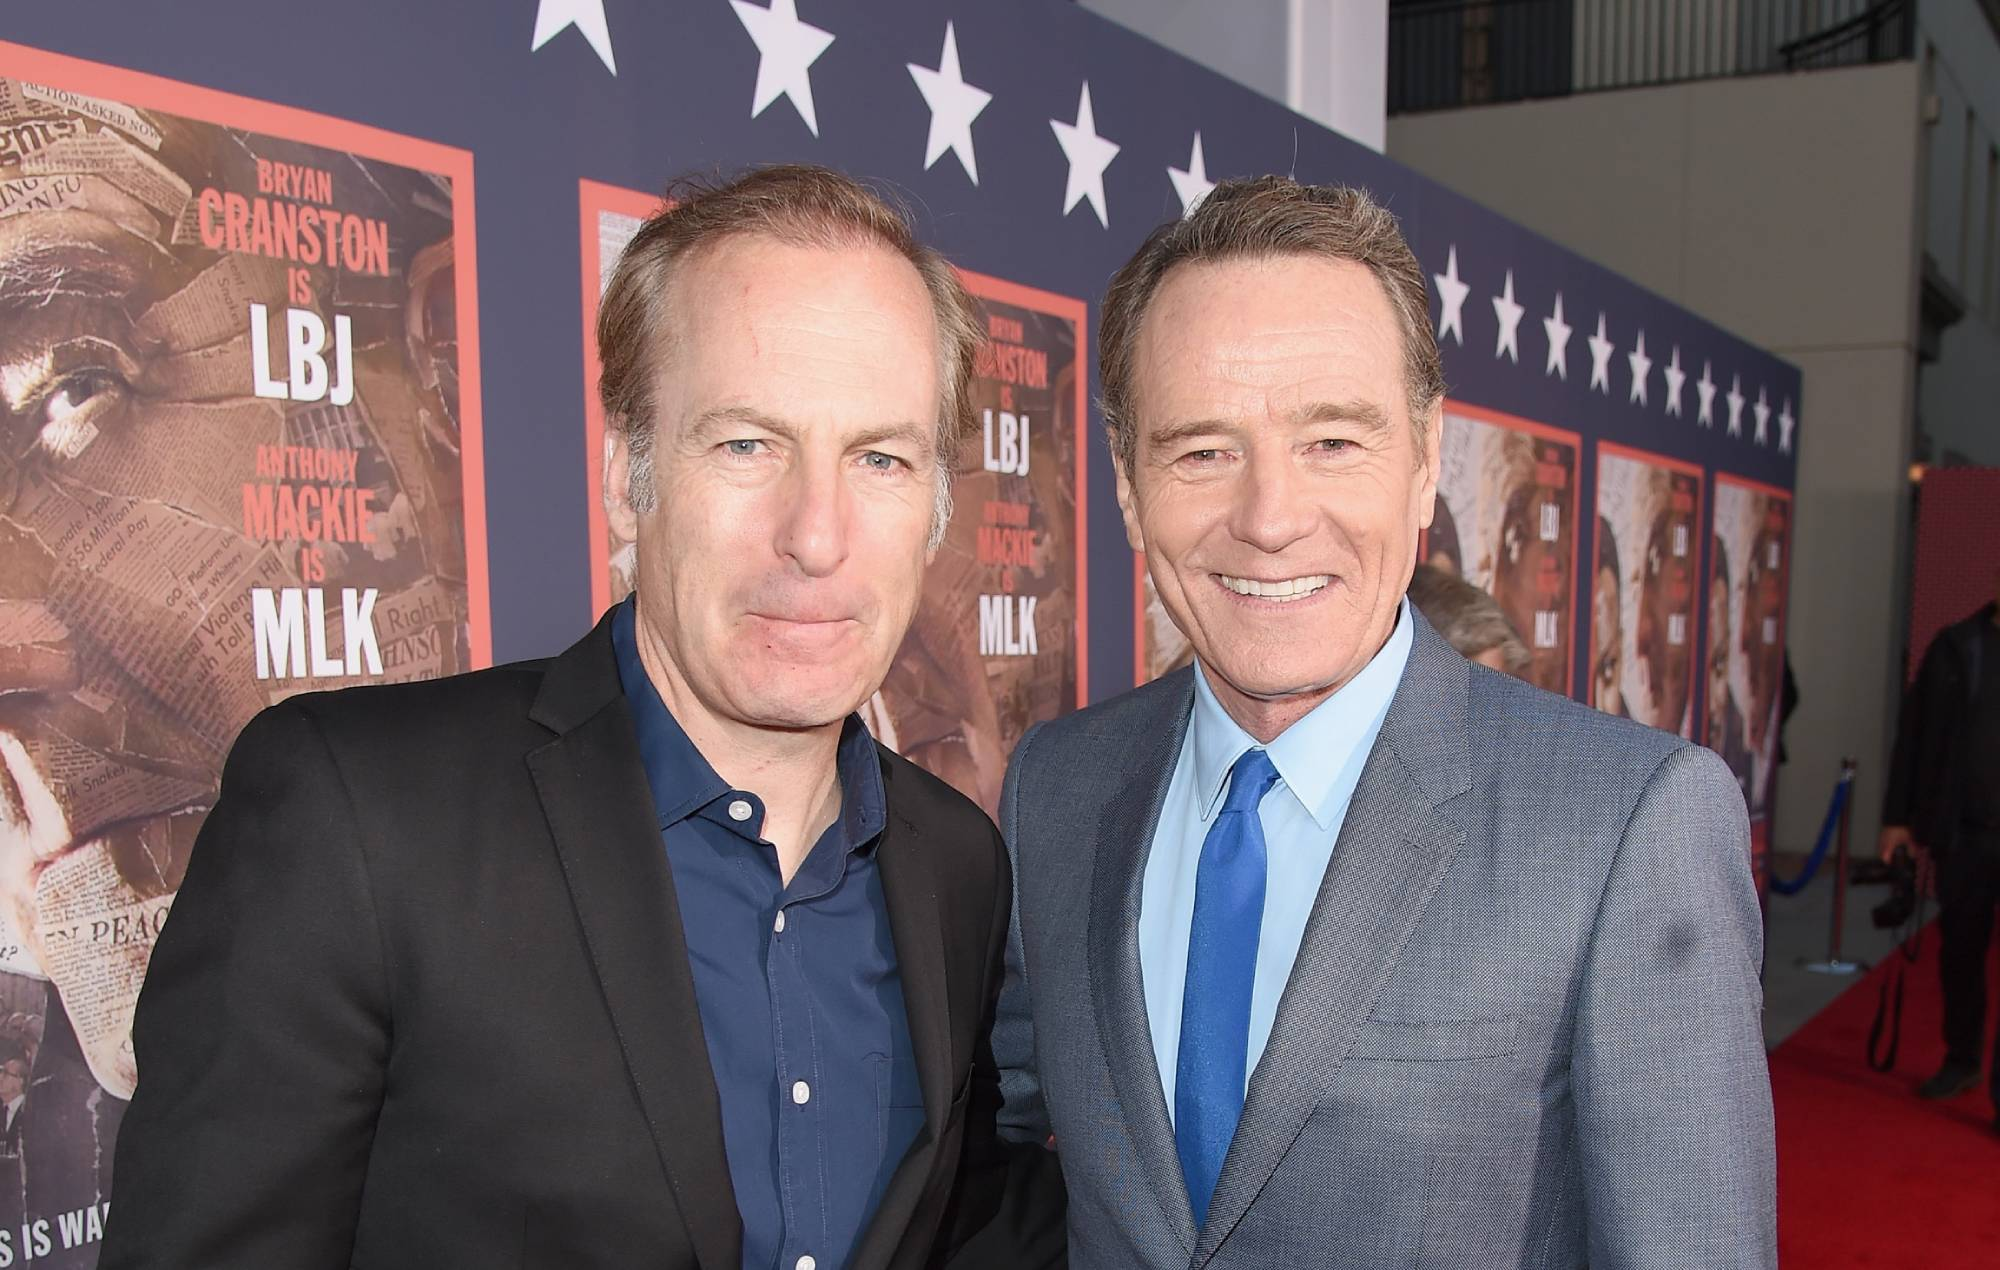 """Bryan Cranston asks fans for """"prayers"""" following Bob Odenkirk's collapse"""